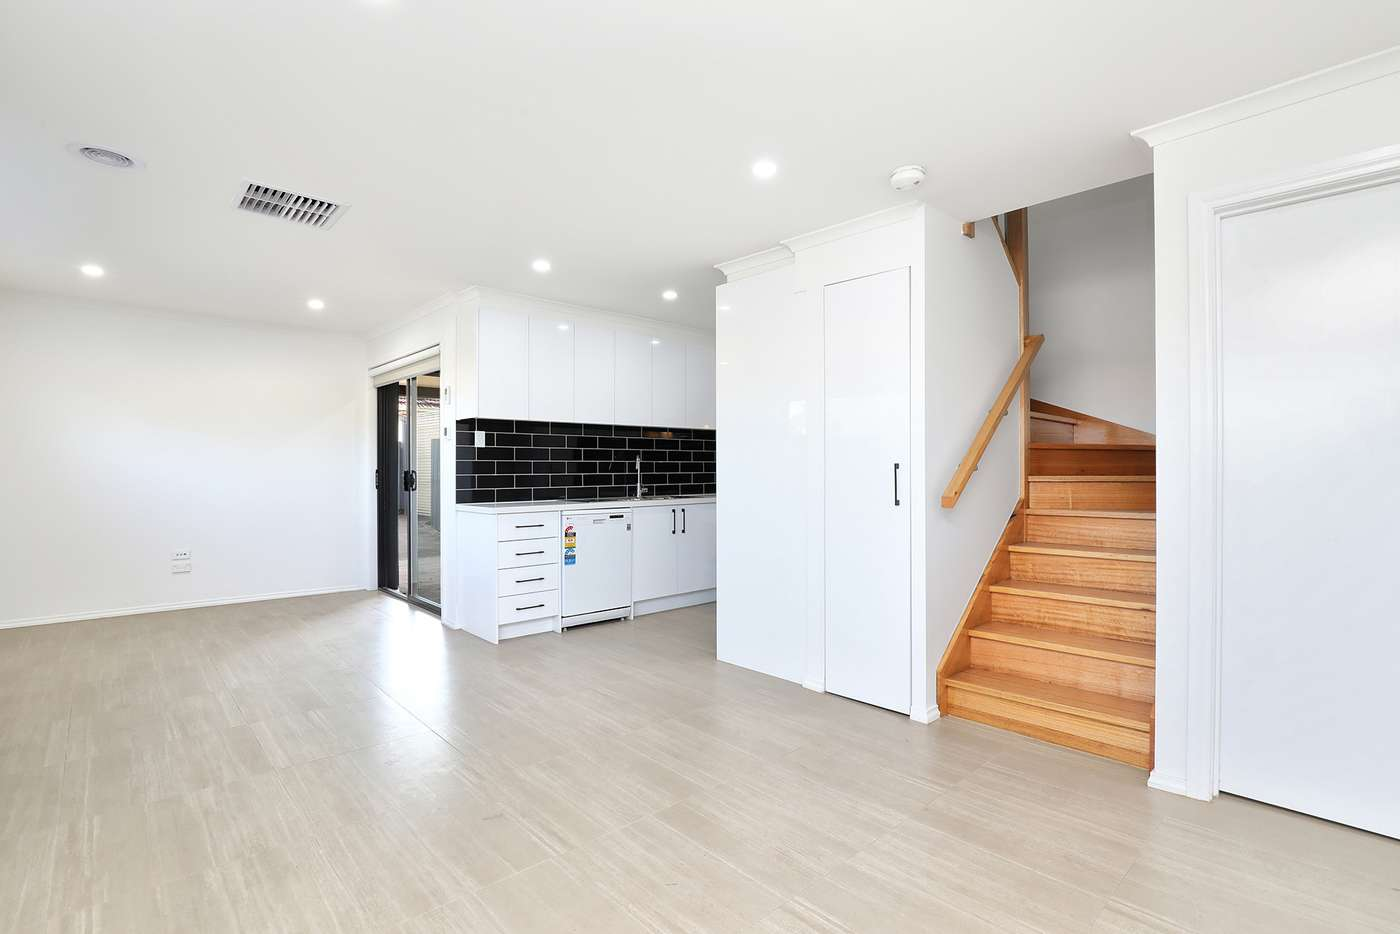 Fifth view of Homely townhouse listing, 388 Francis Street, Yarraville VIC 3013